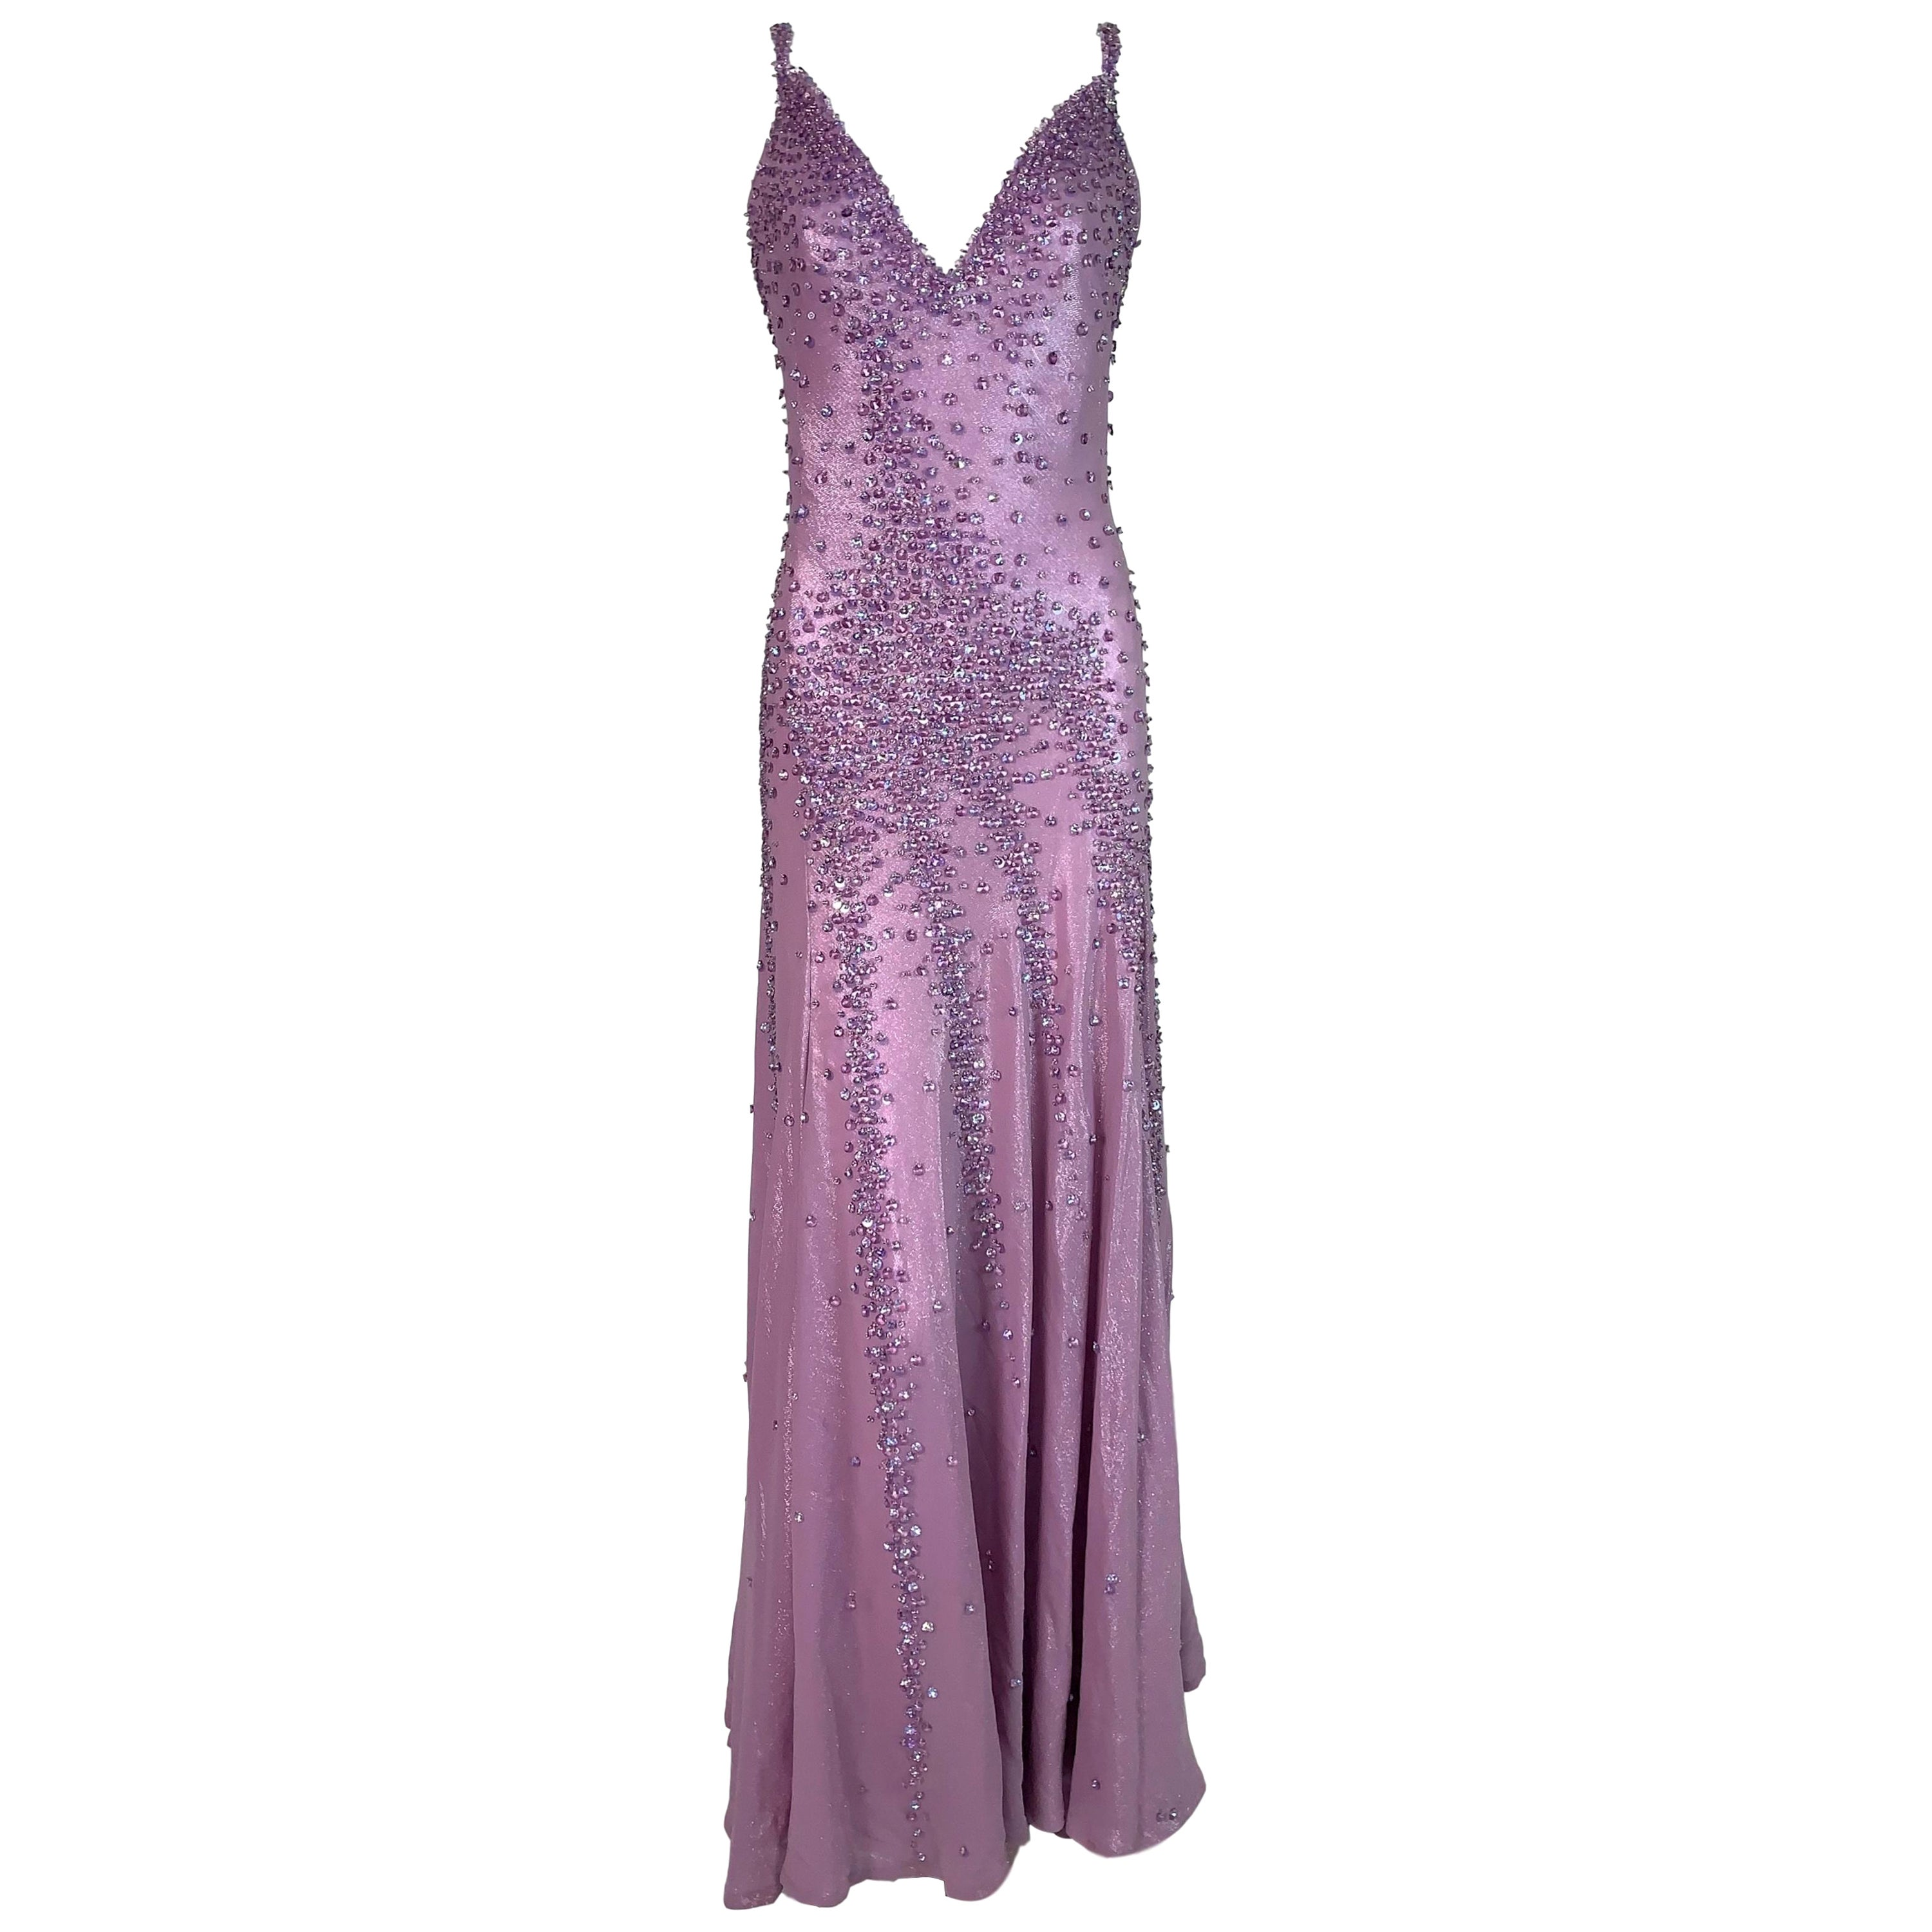 S/S 1995 Atelier Versace Gianni Runway Lavender Crystal Plunging Gown Dress